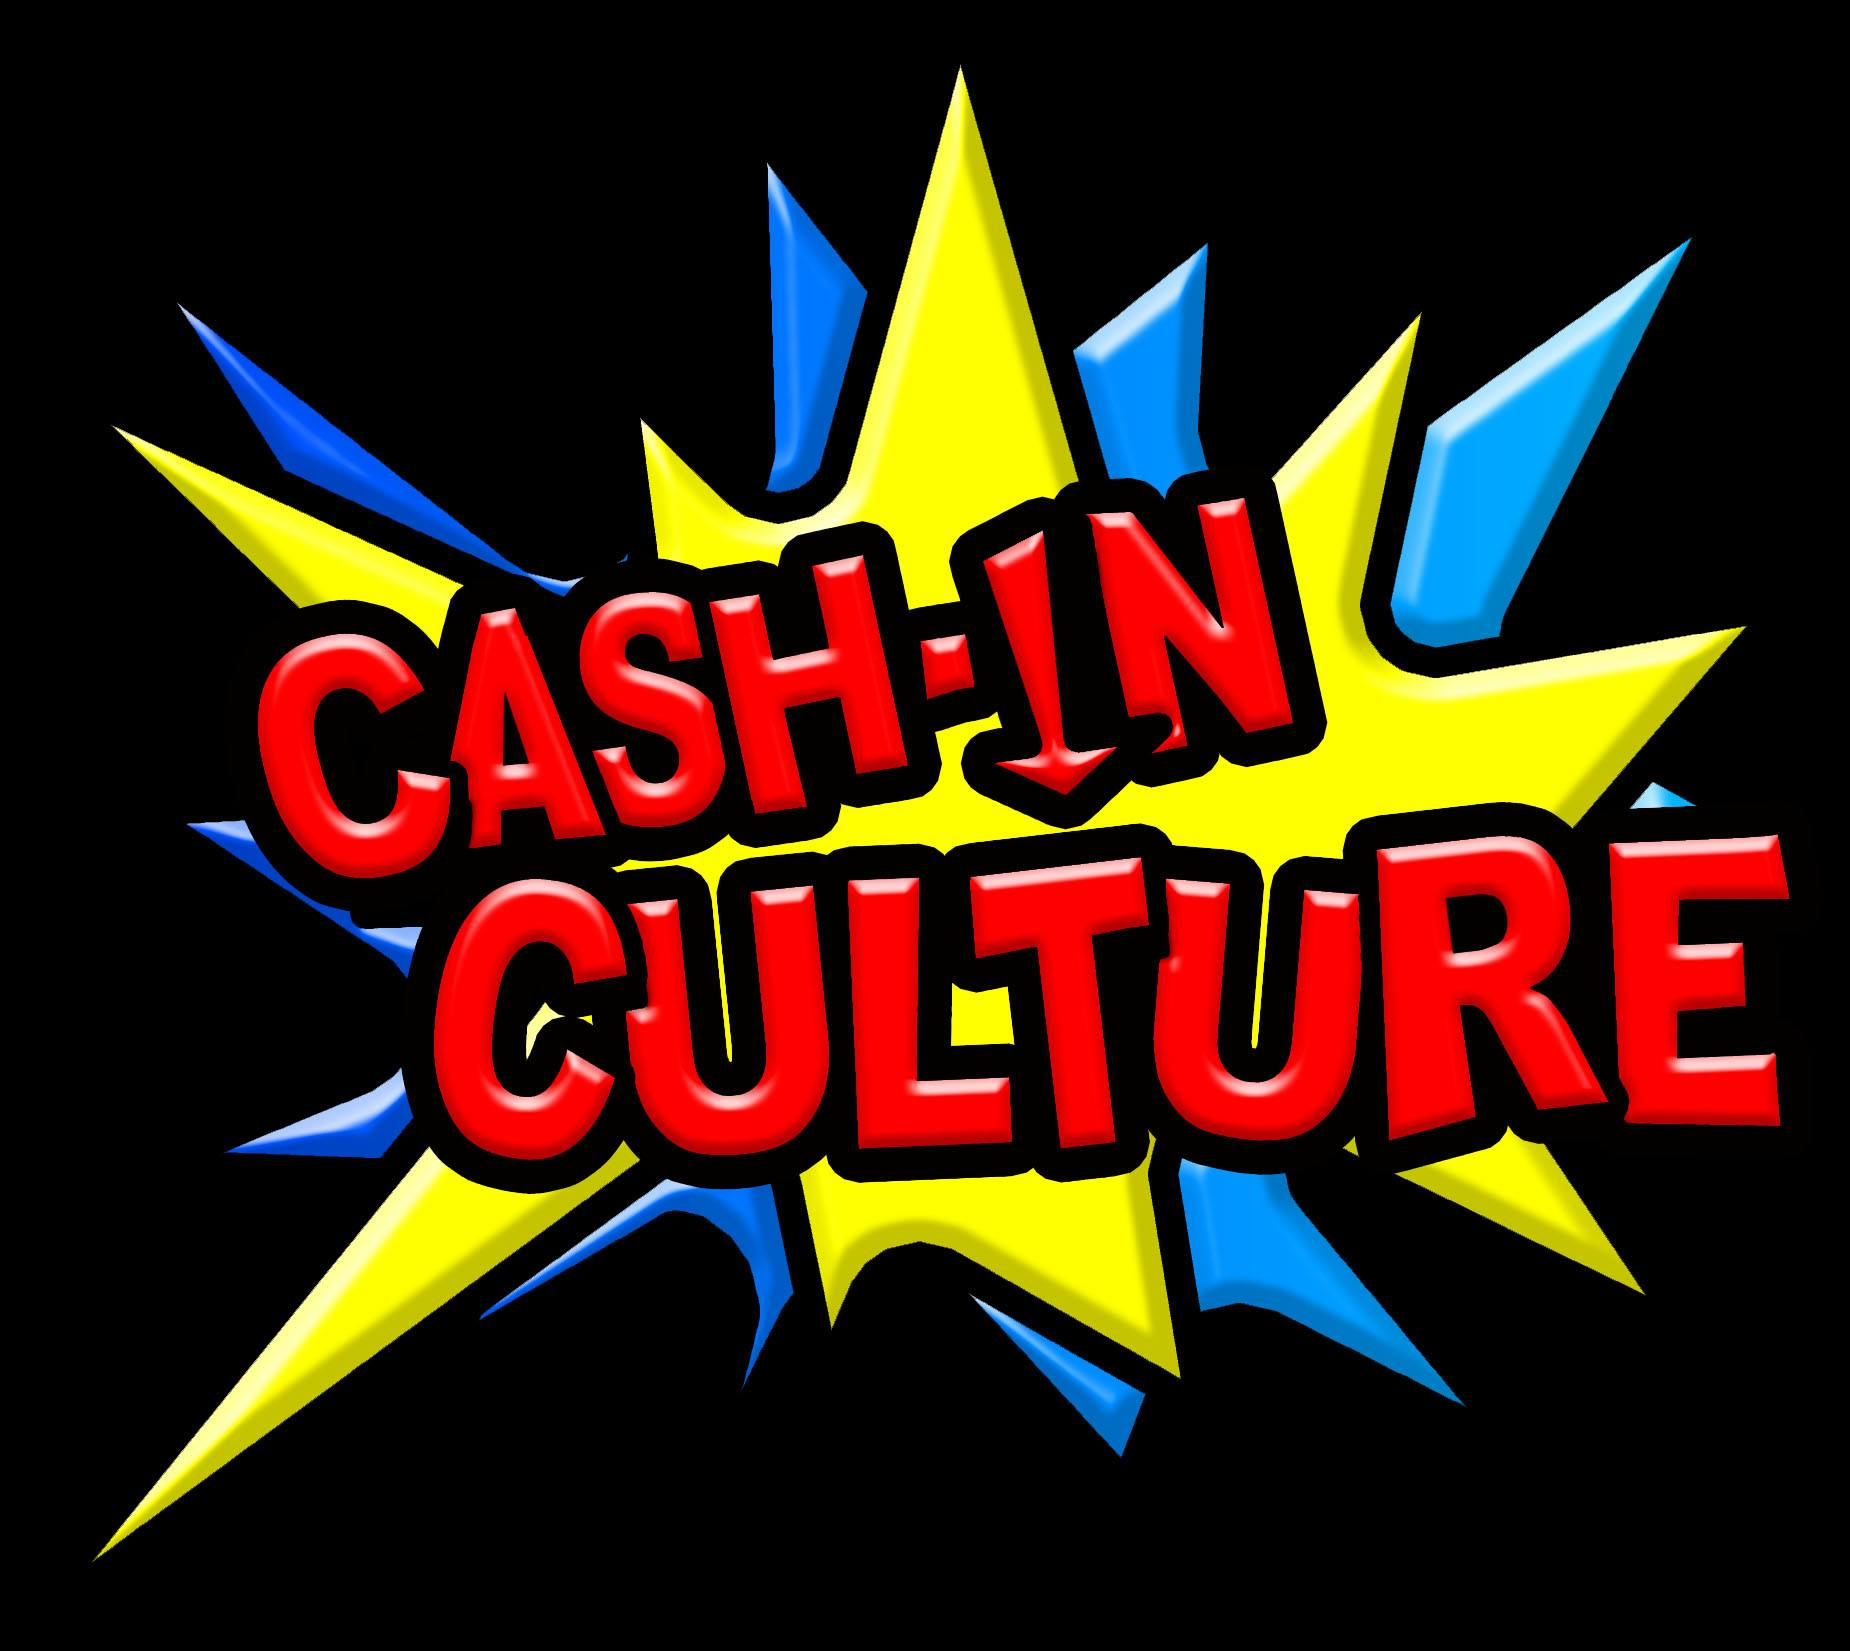 Cash-in Culture logo